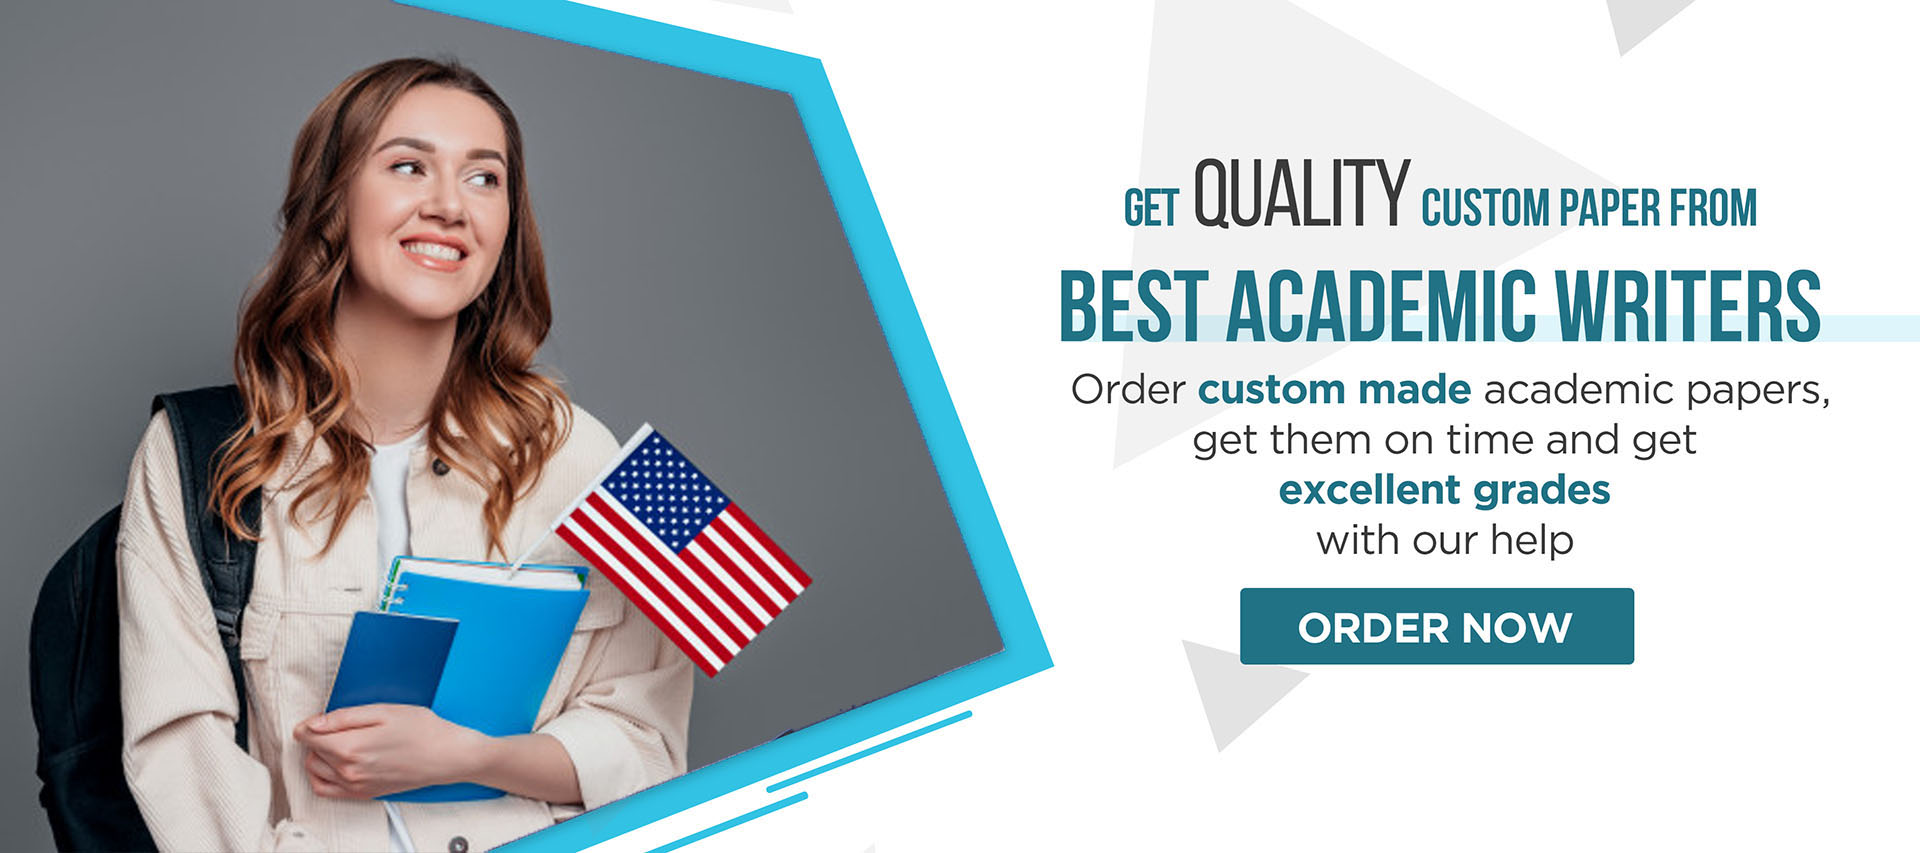 Order custom made academic papers, get them on time and get exellent grades with our help in USA.